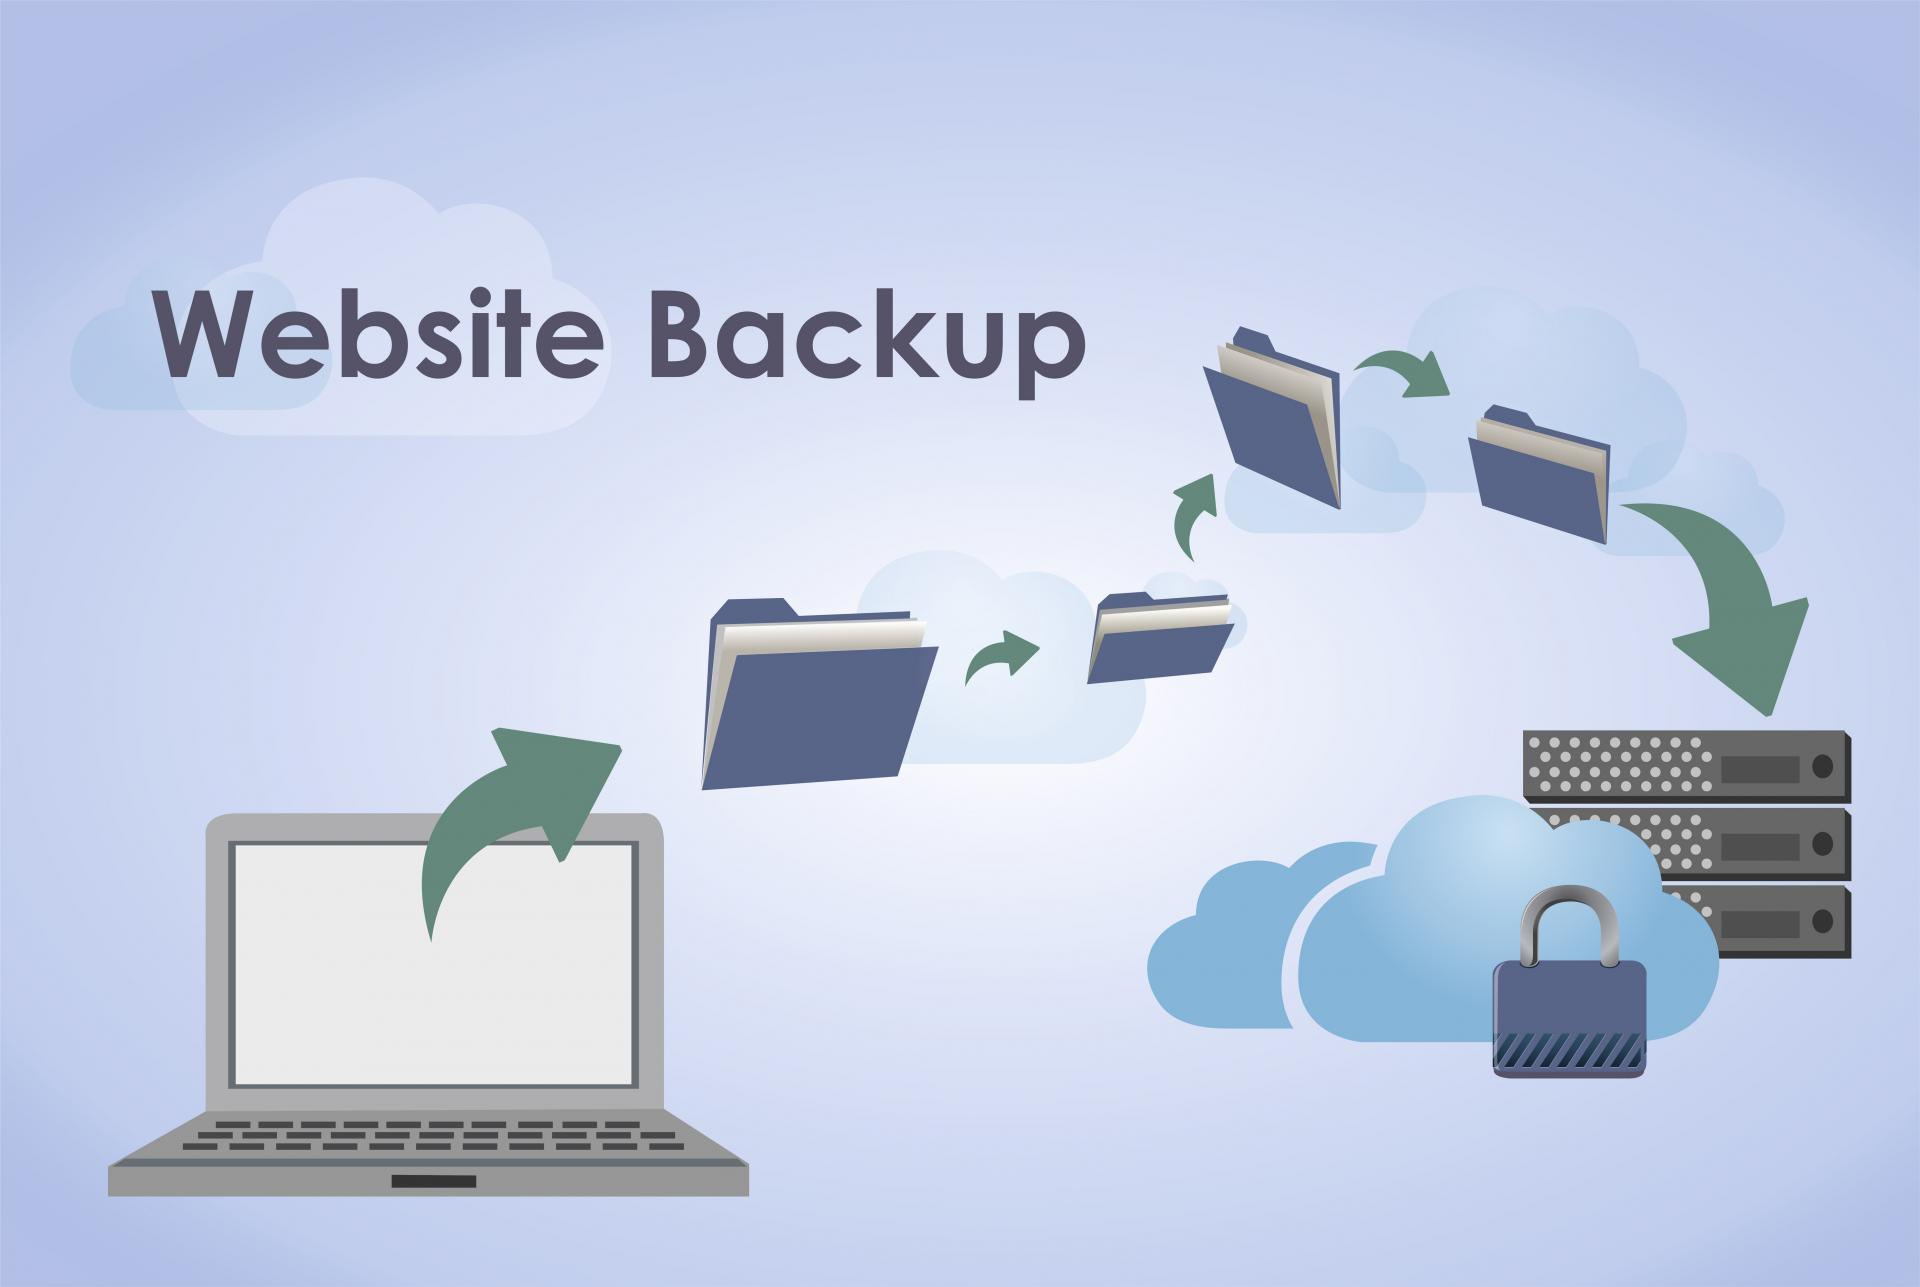 What is website backup and why do you need it